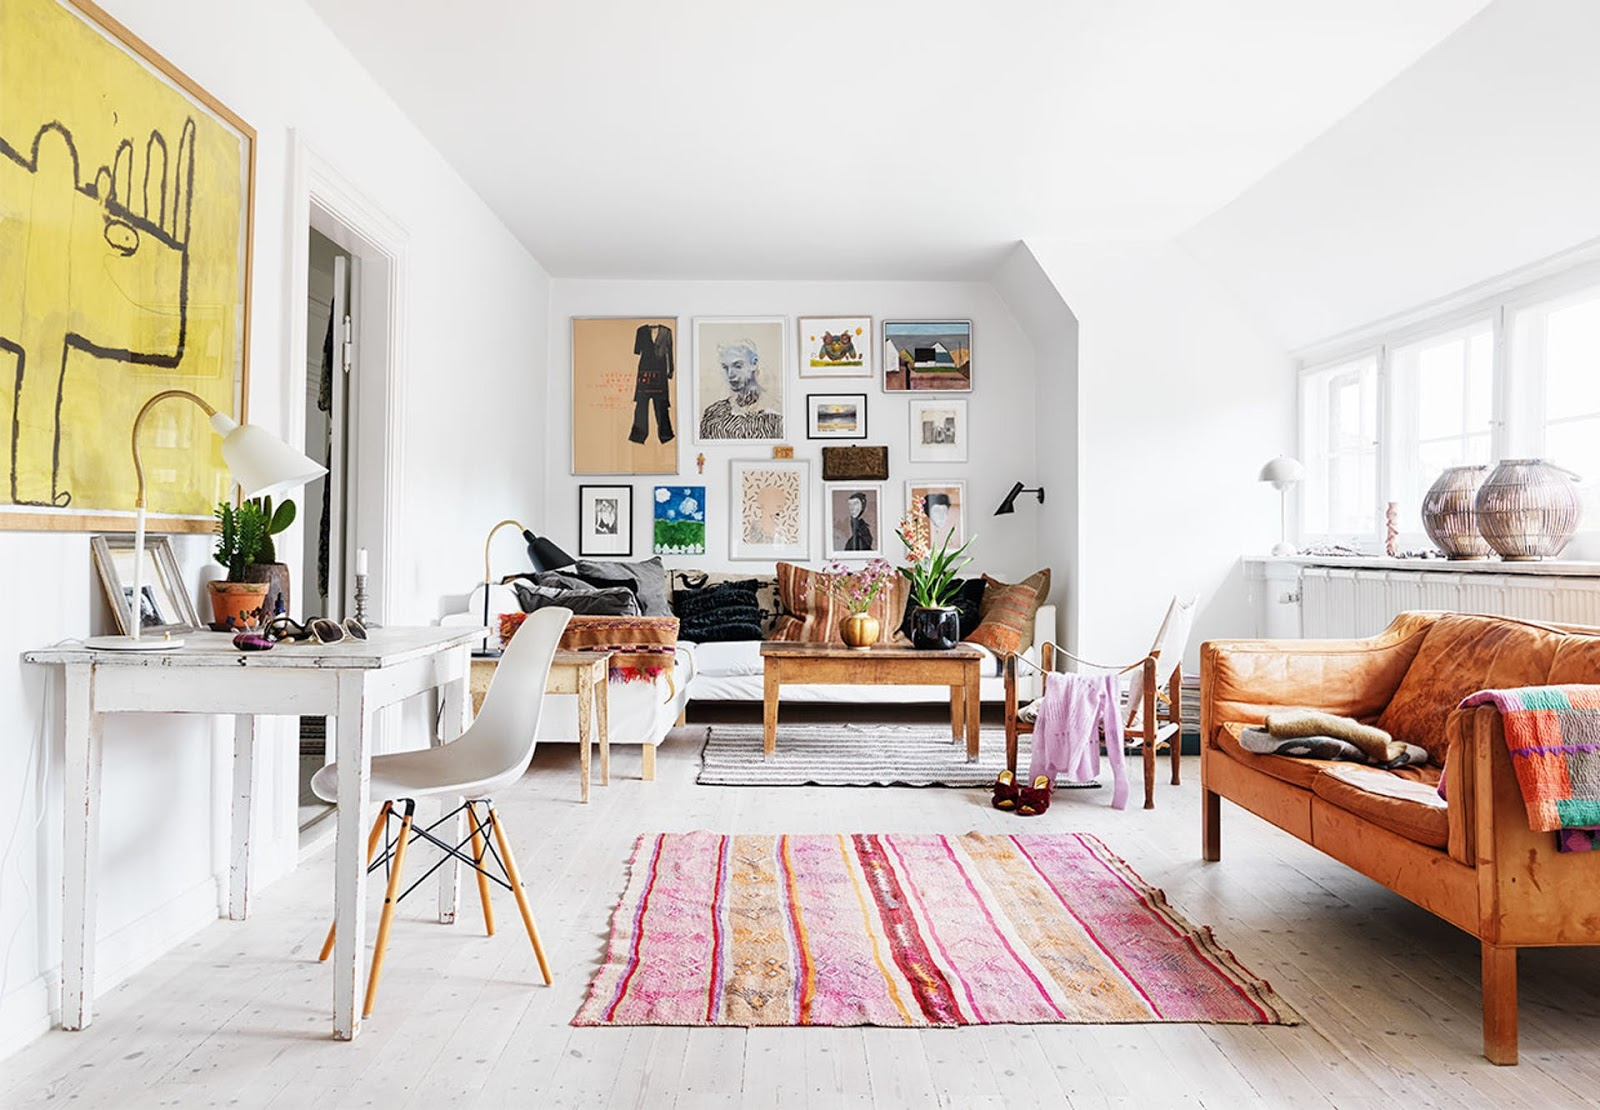 scandinavian interior with colorful rugs, oriental bohemian style, eames chairs, art, vintage furniture